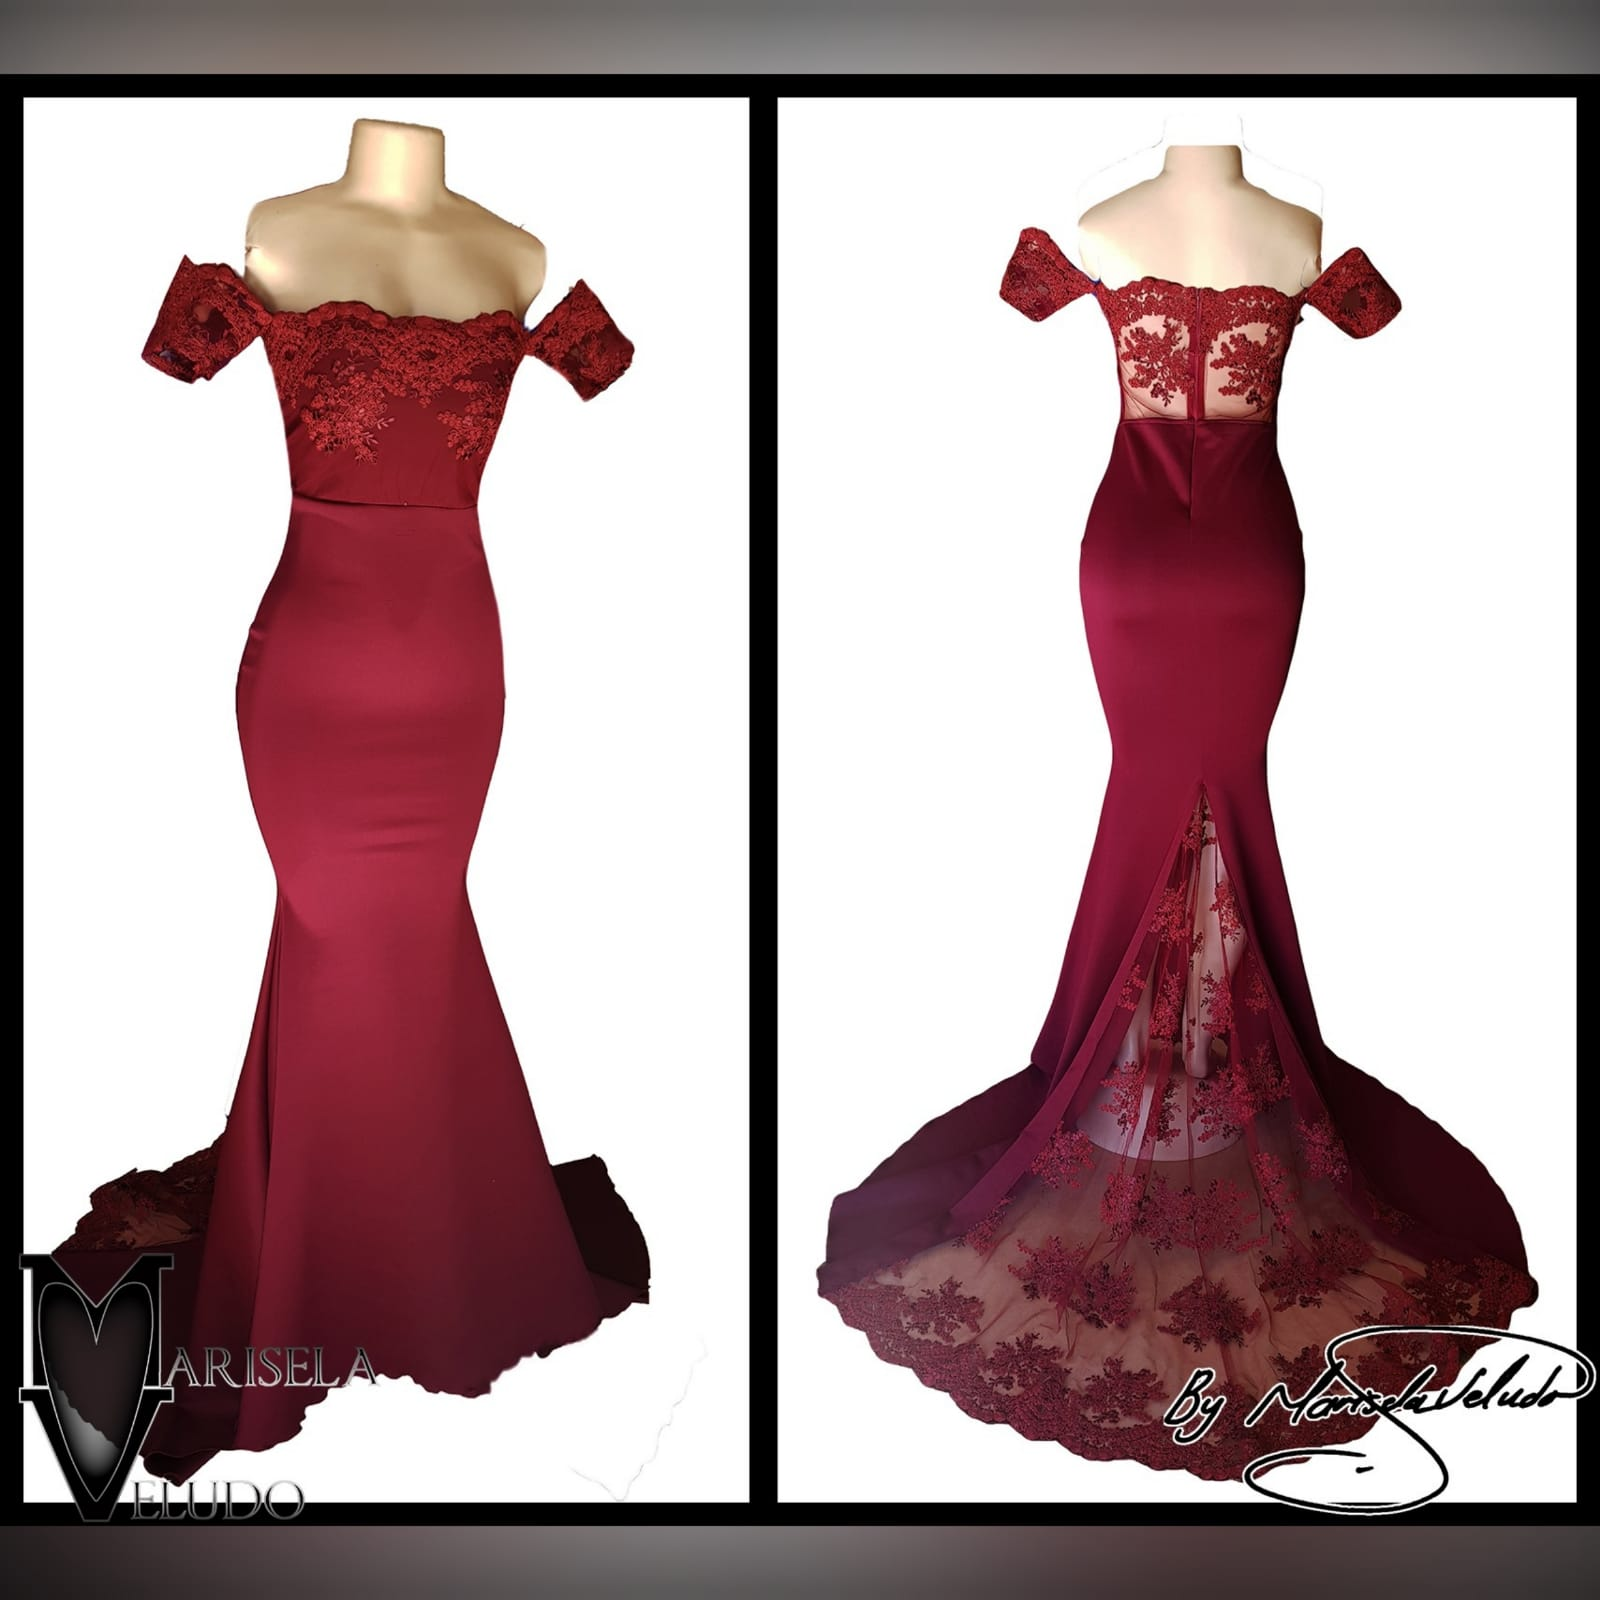 Maroon soft mermaid evening dress with lace bodice 4 maroon soft mermaid evening dress with lace bodice, back detailed with lace. With a lace train and lace border.